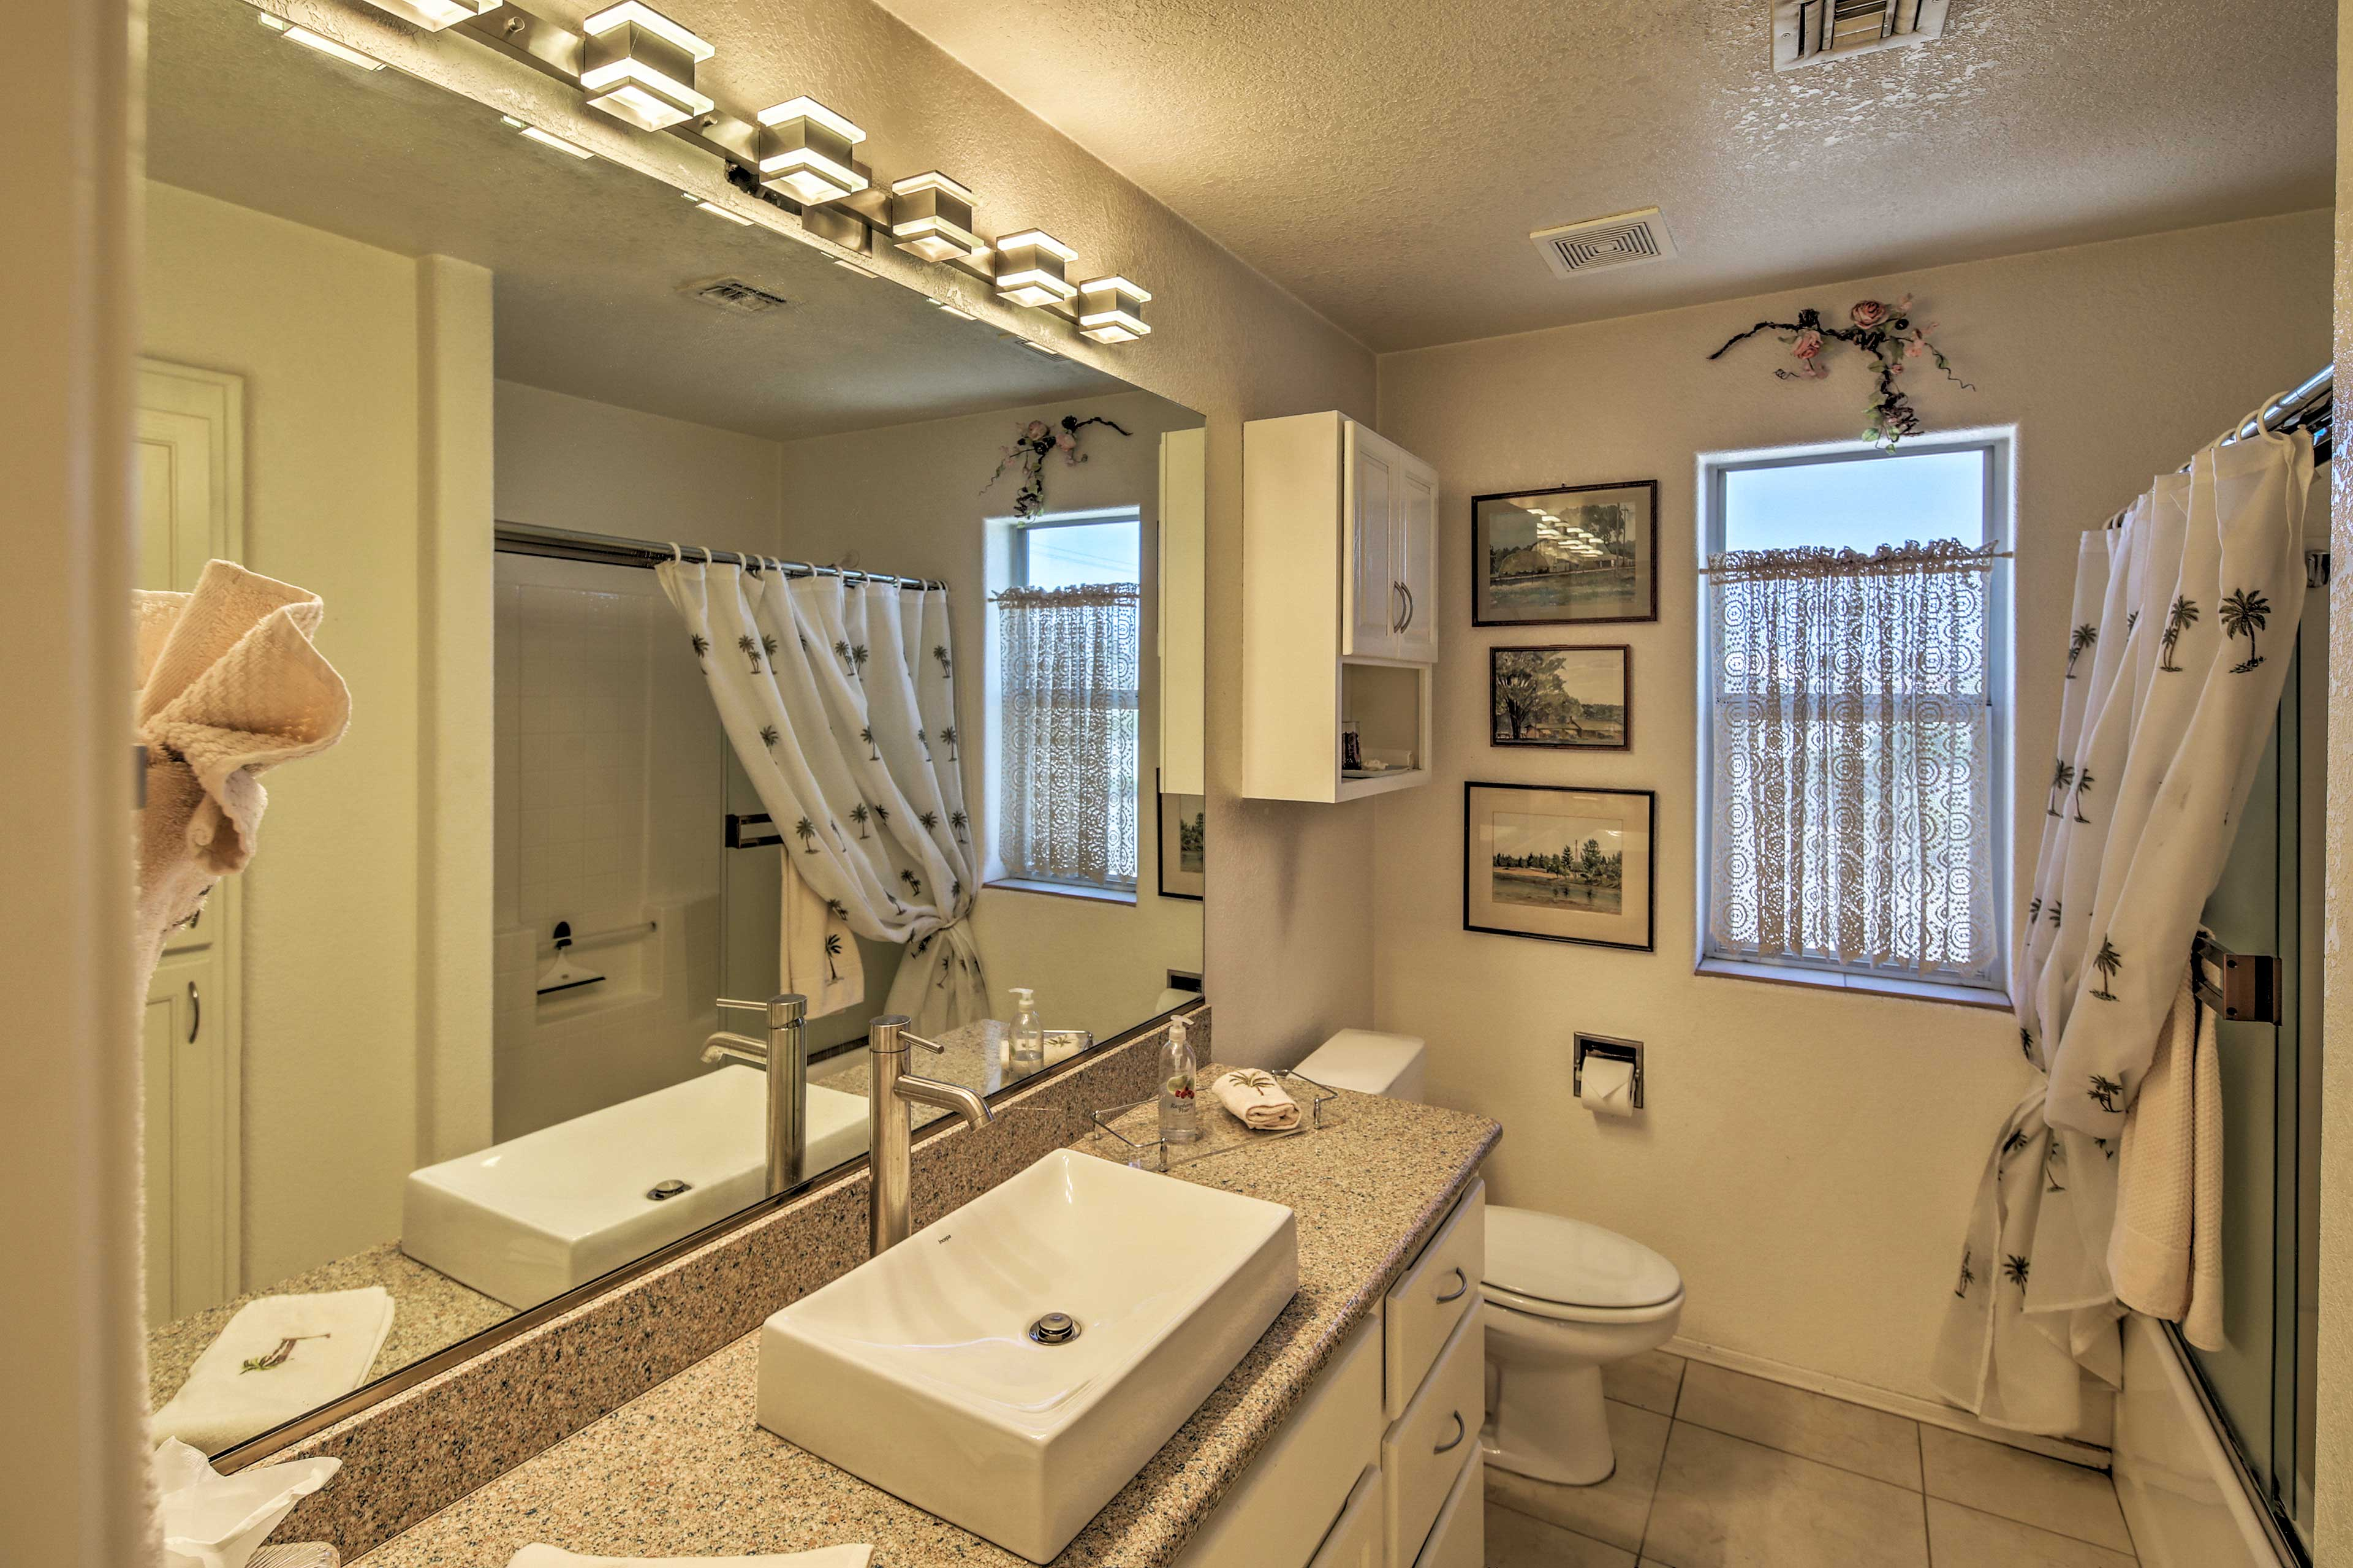 Change into your comfy clothes after showering in this second bathroom.